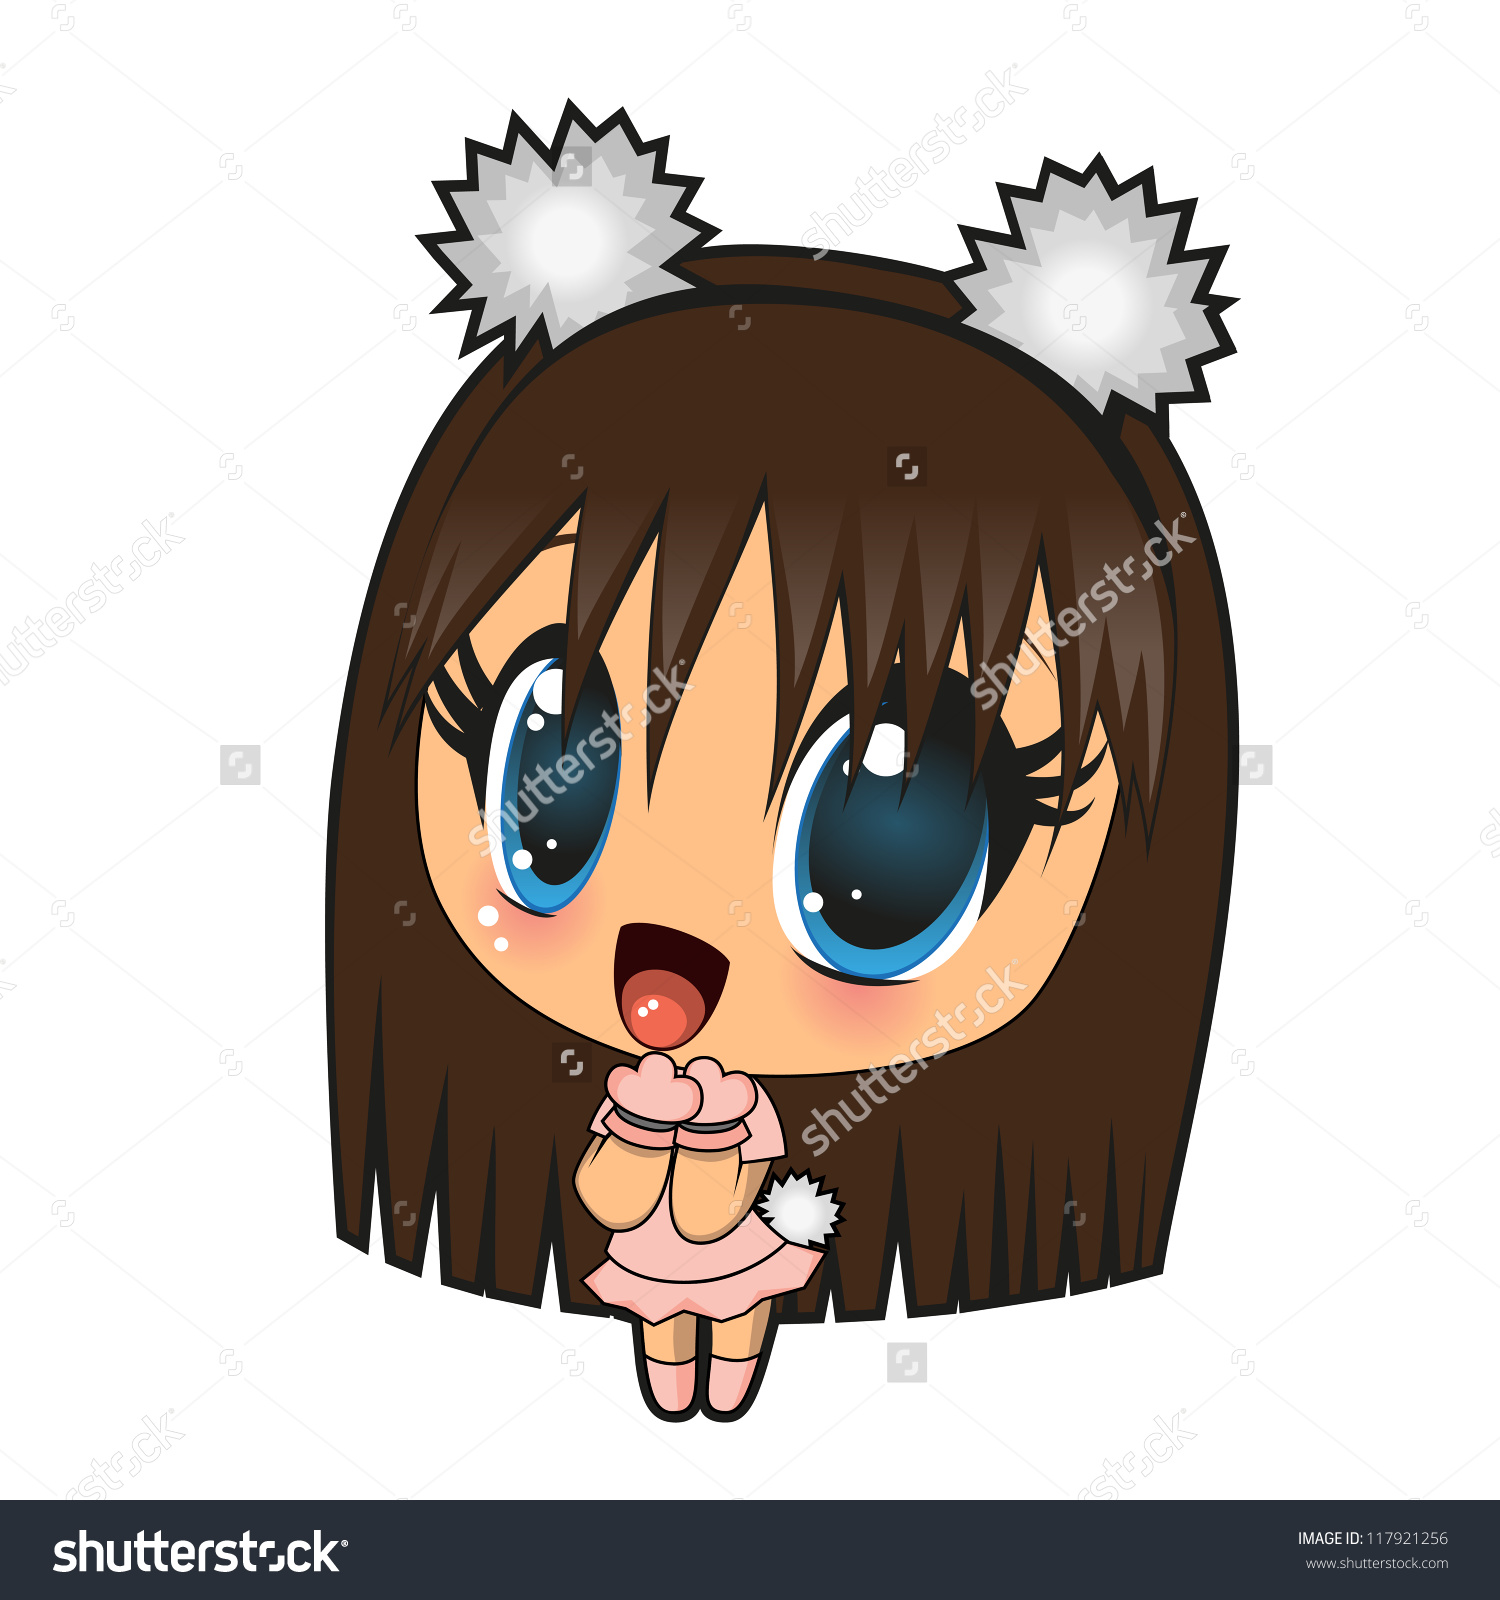 Anime clipart cute Anime clipart backgrounds and and